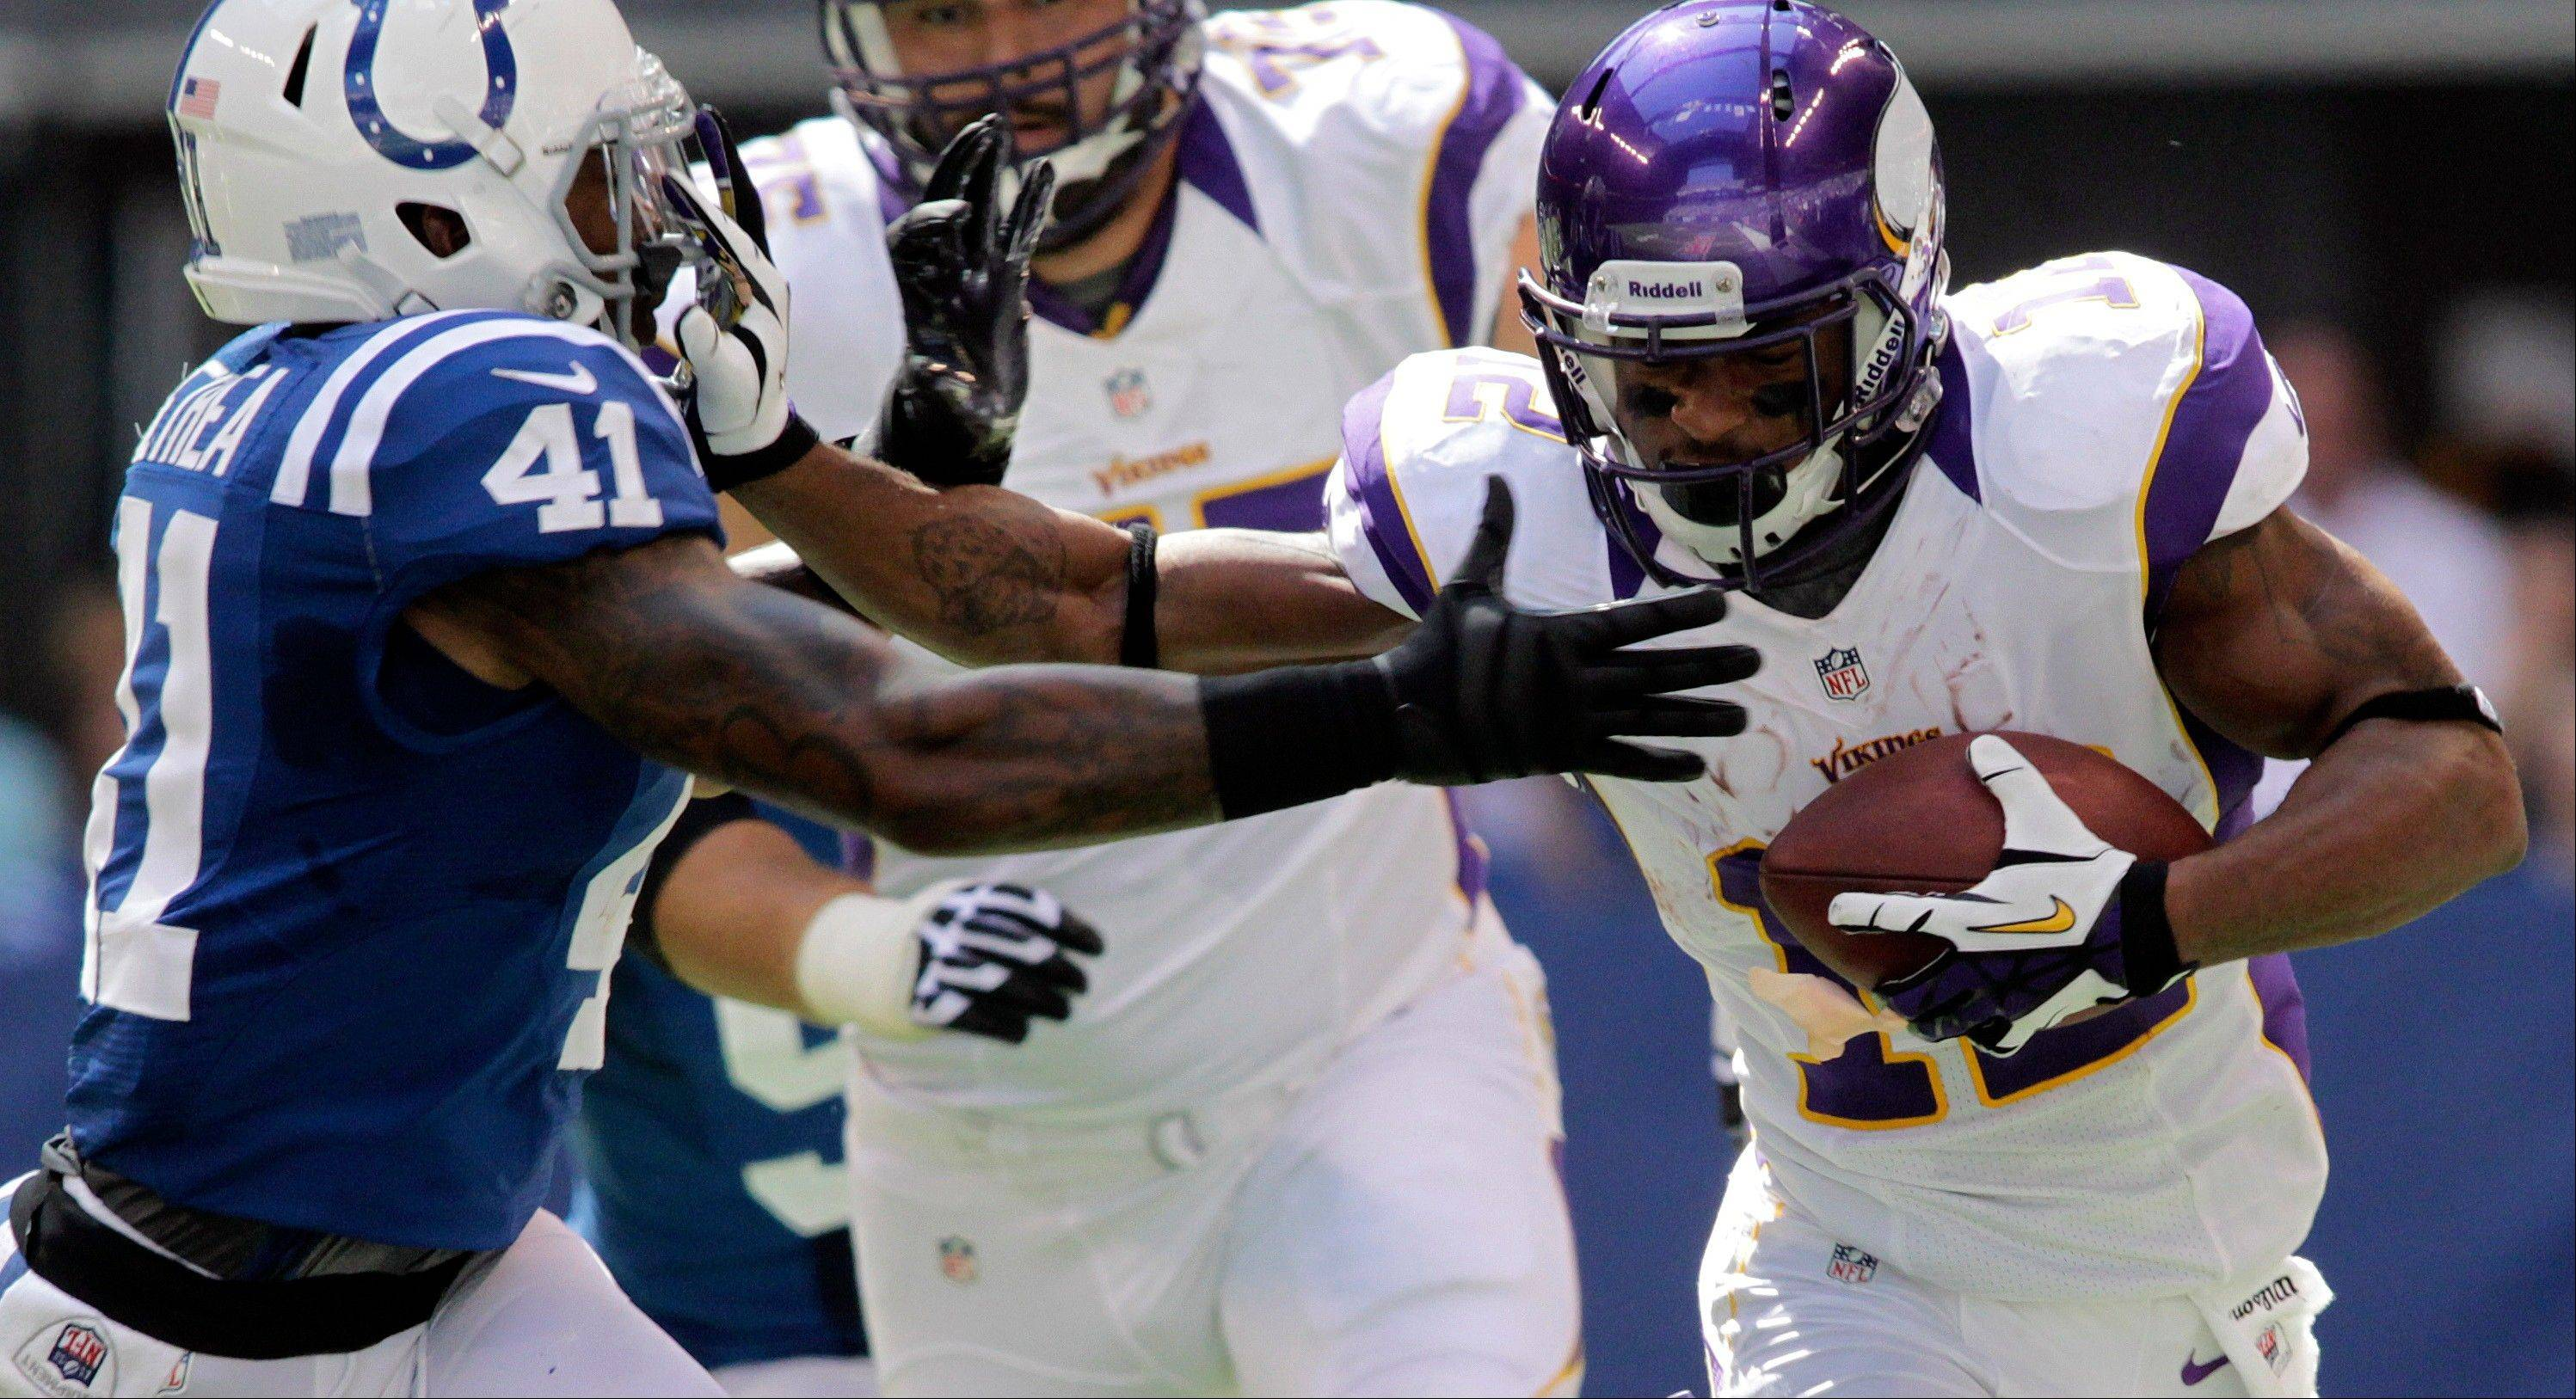 Minnesota Vikings wide receiver Percy Harvin, right, runs against the Indianapolis Colts' Antoine Bethea earlier this season. The Vikings will likely be without Harvin again this weekend because of his sprained left ankle.